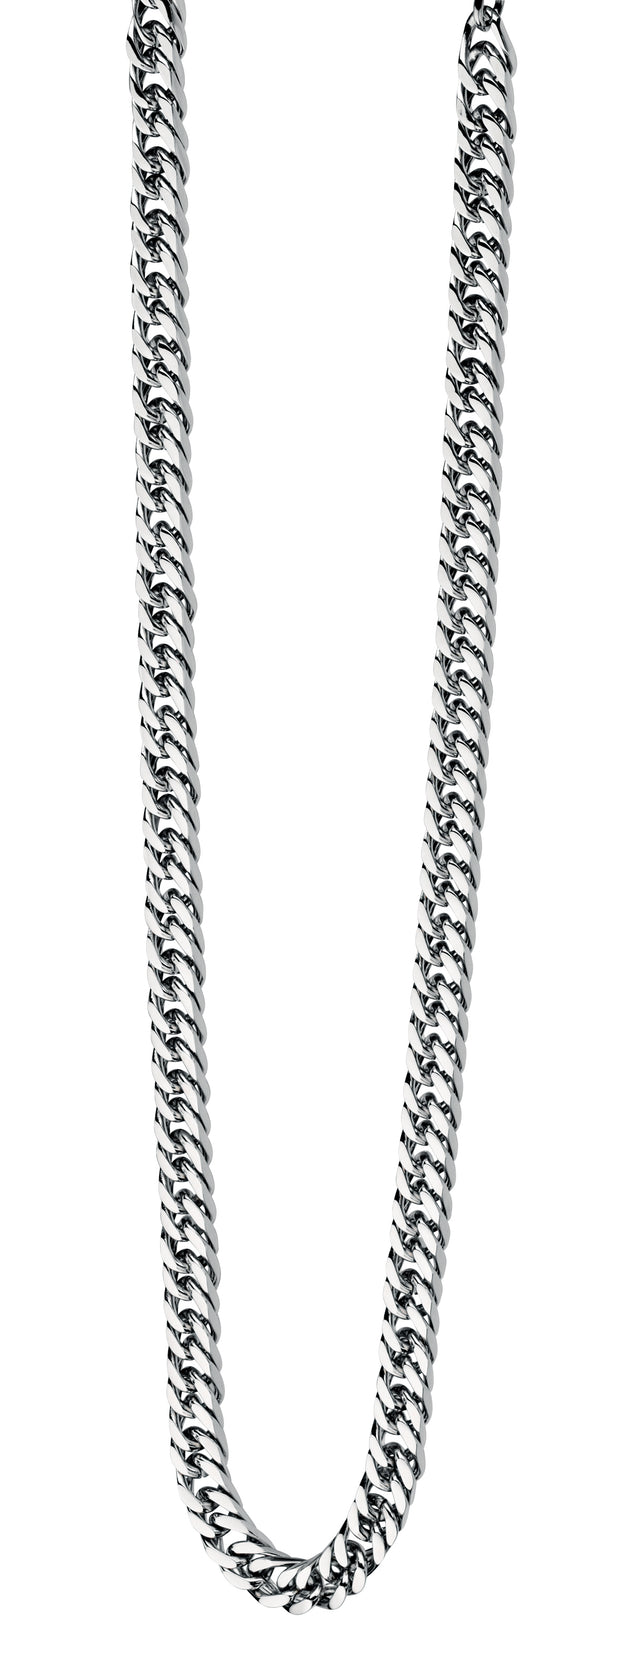 Fred Bennett Stainless Steel Heavy Curb Chain